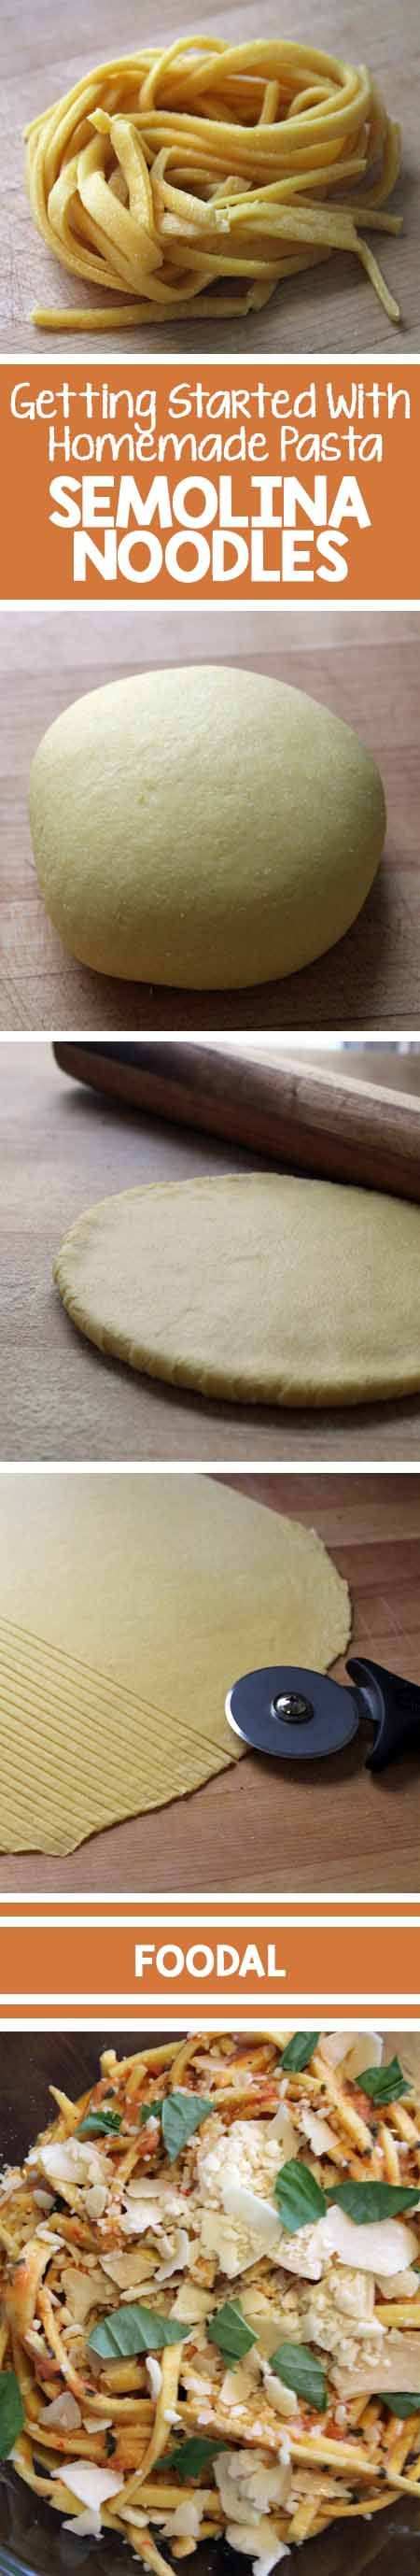 Want to try your hand at homemade pasta? If so, a basic Semolina style is the easiest way to begin. Let Foodal show you step-by-step how to turn ordinary flour into noodle goodness. Read now to get the recipe and a bunch of bonus tips and techniques.  http://foodal.com/recipes/pasta/basic-semolina/